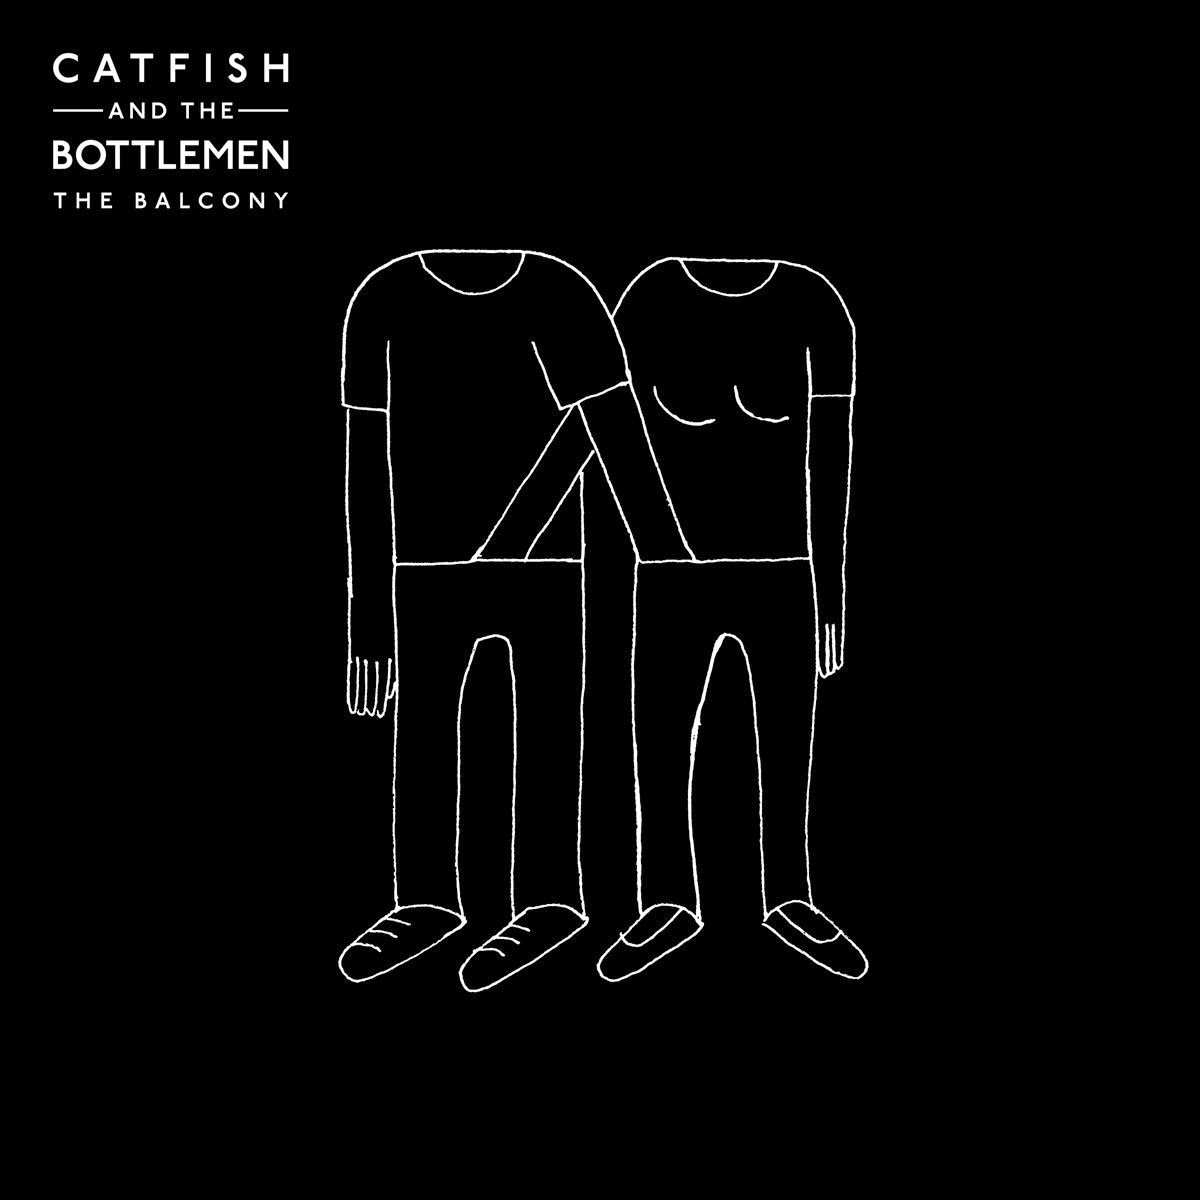 catfish-and-the-bottlemen-the-balcony